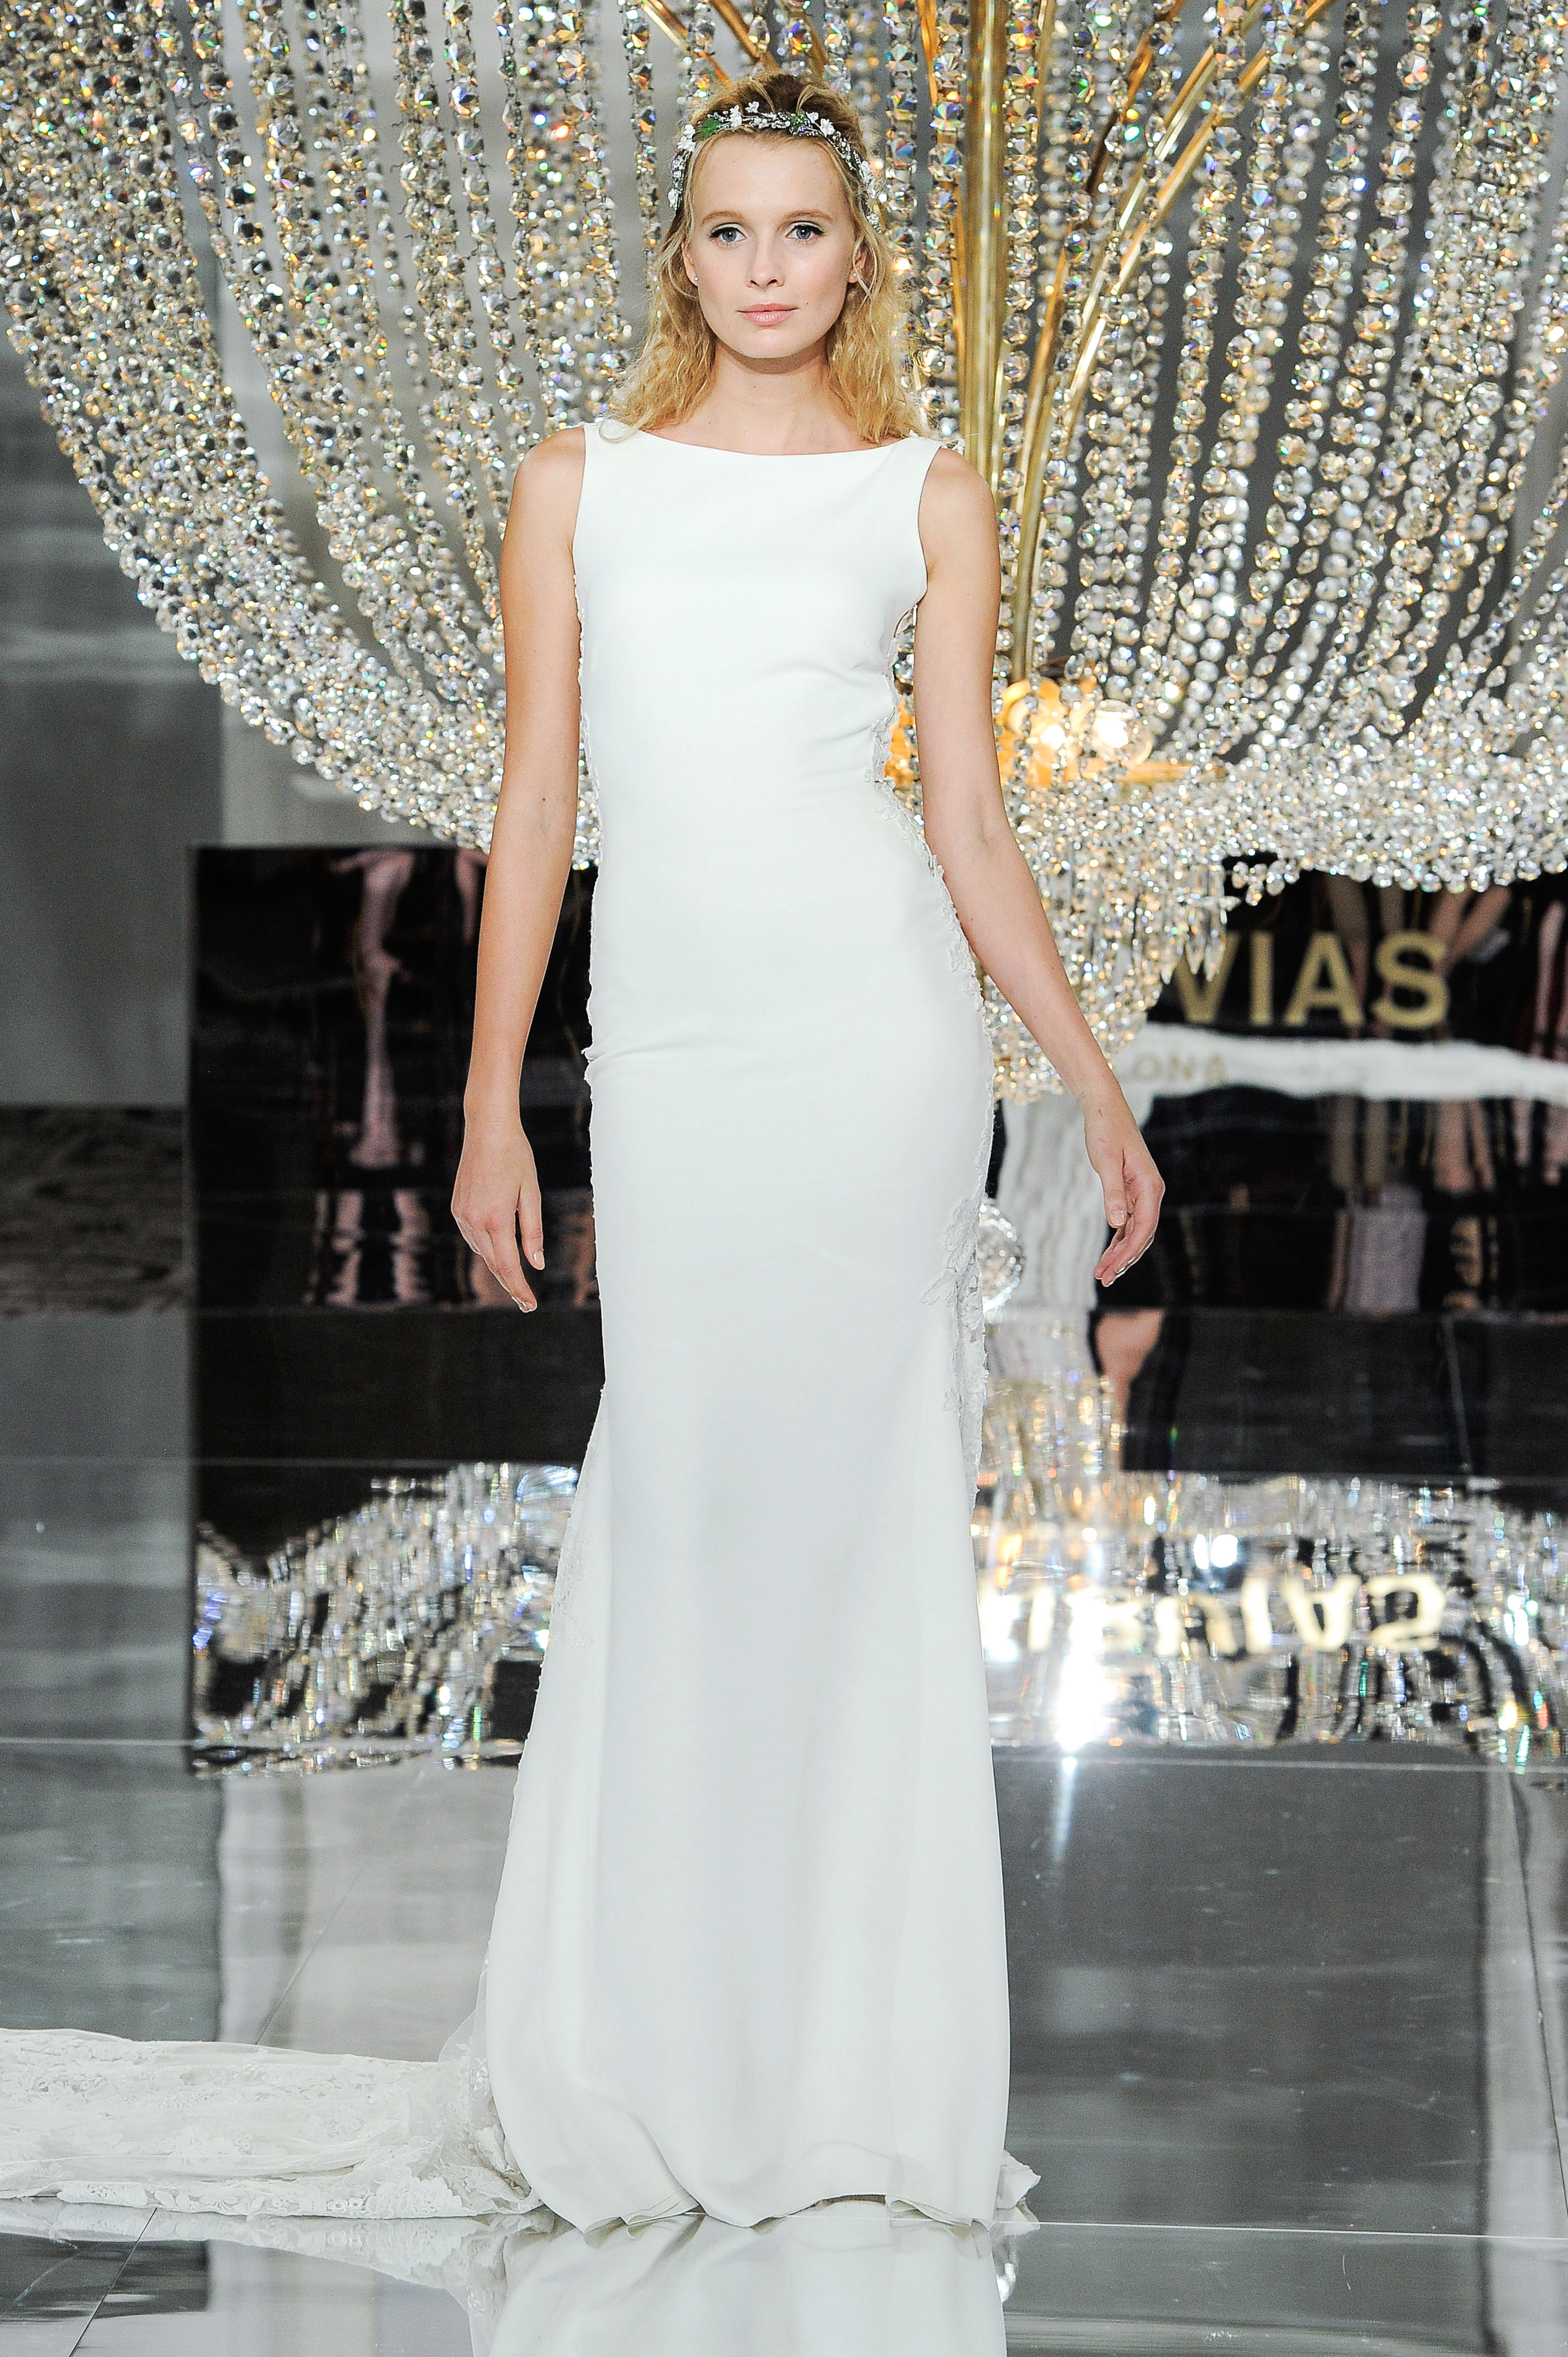 pronovias wedding dress fall 2018 boatneck sleeveless column